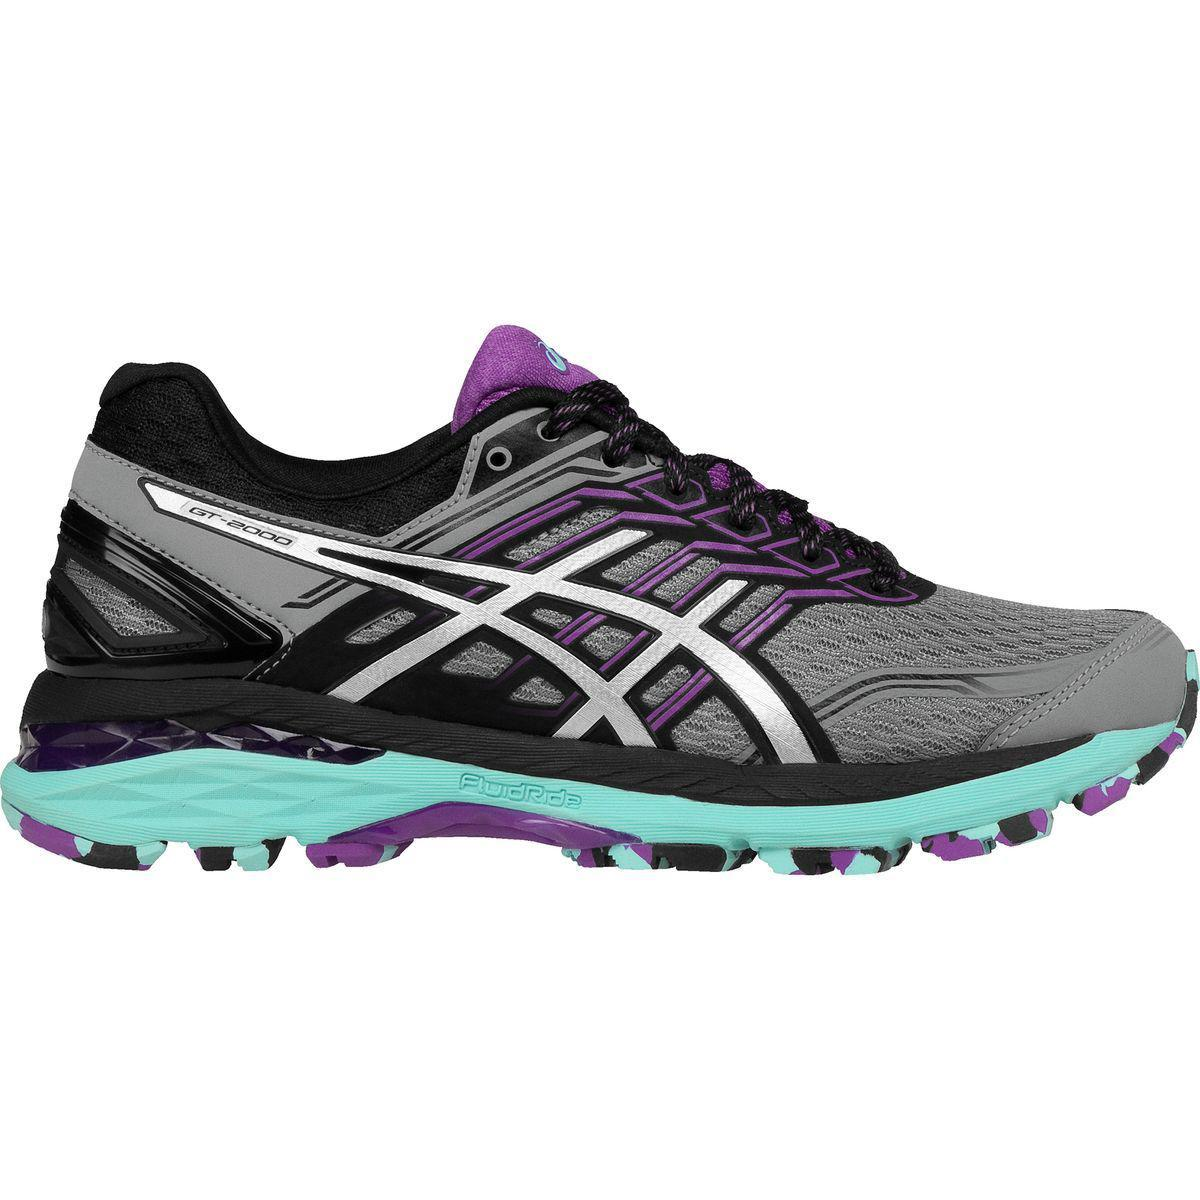 Asics. Women's Gt-2000 5 Trail Running Shoe